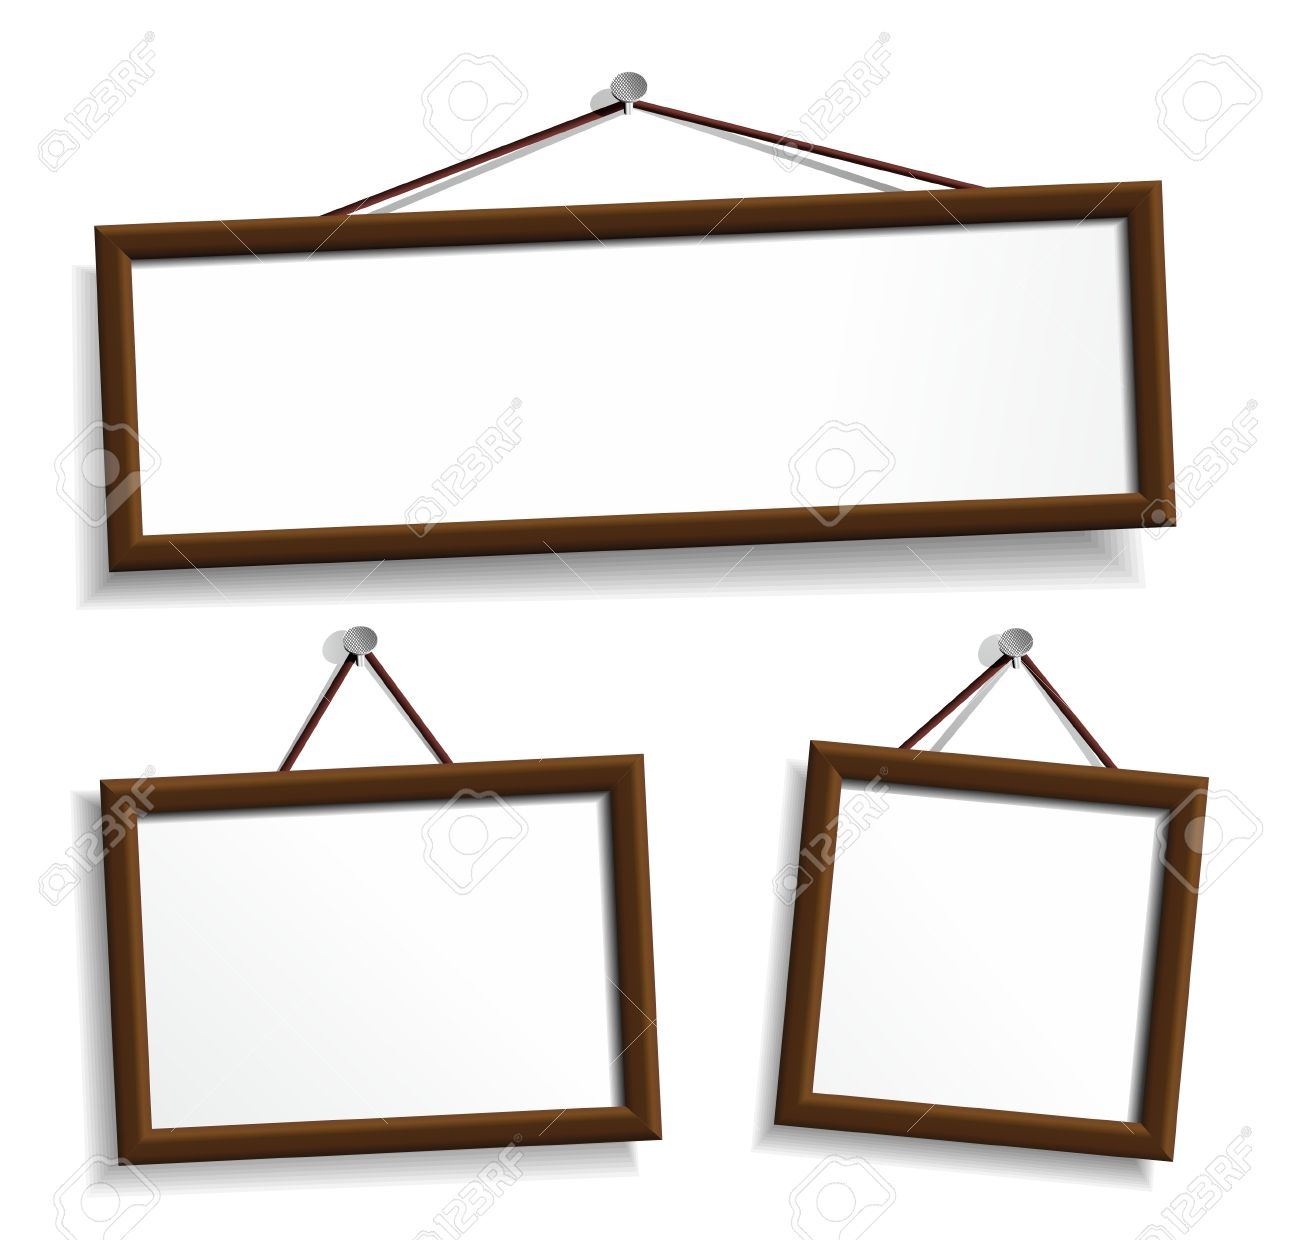 Wooden Frames Hanging On A Nails. Royalty Free Cliparts, Vectors ...